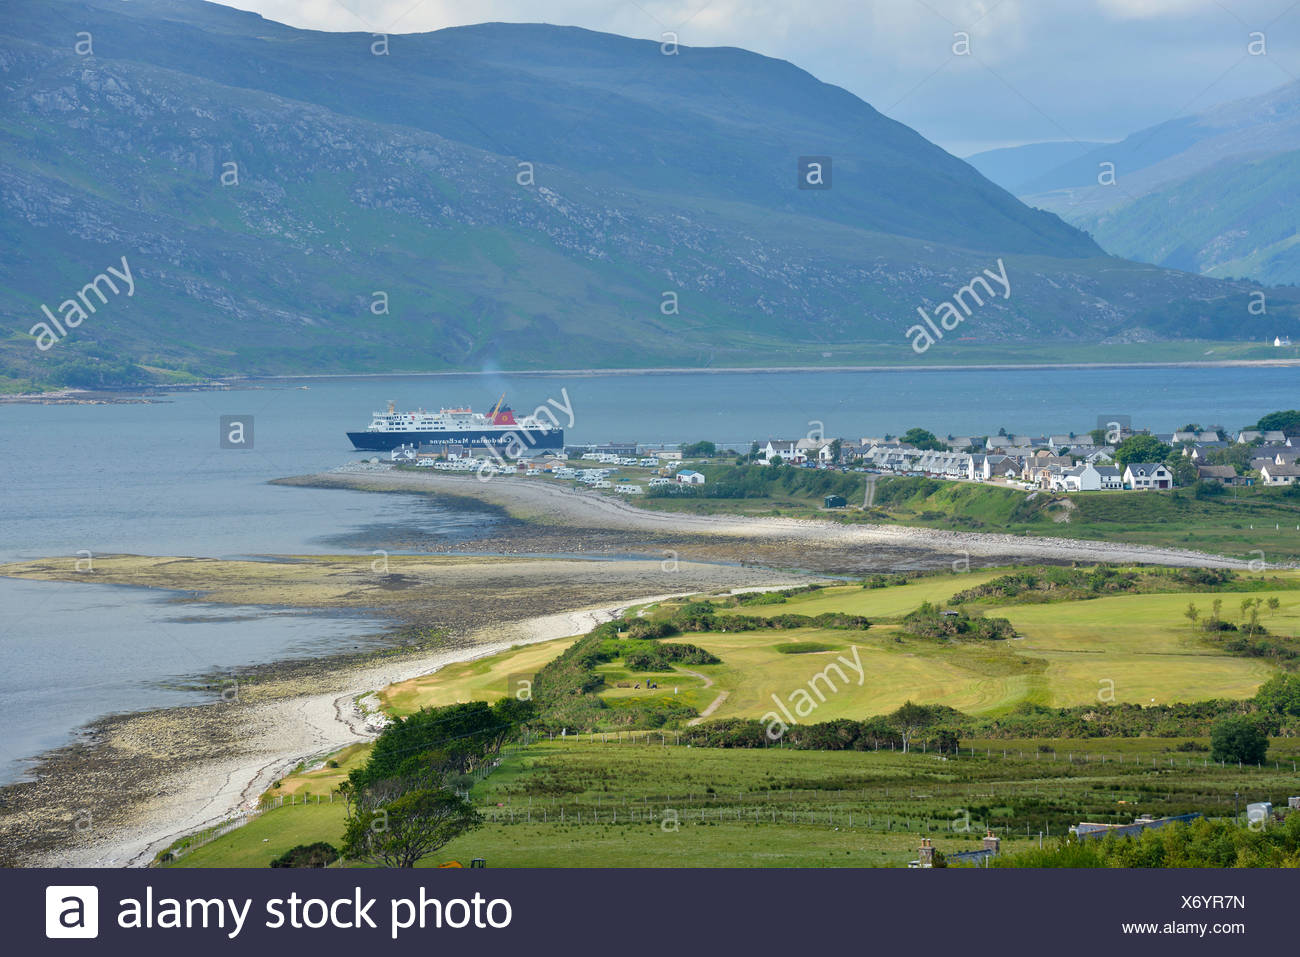 Ullapool with ferry, Loch Assynt, Scottish Highlands, Western Ross, Scotland, United Kingdom, Europe - Stock Image